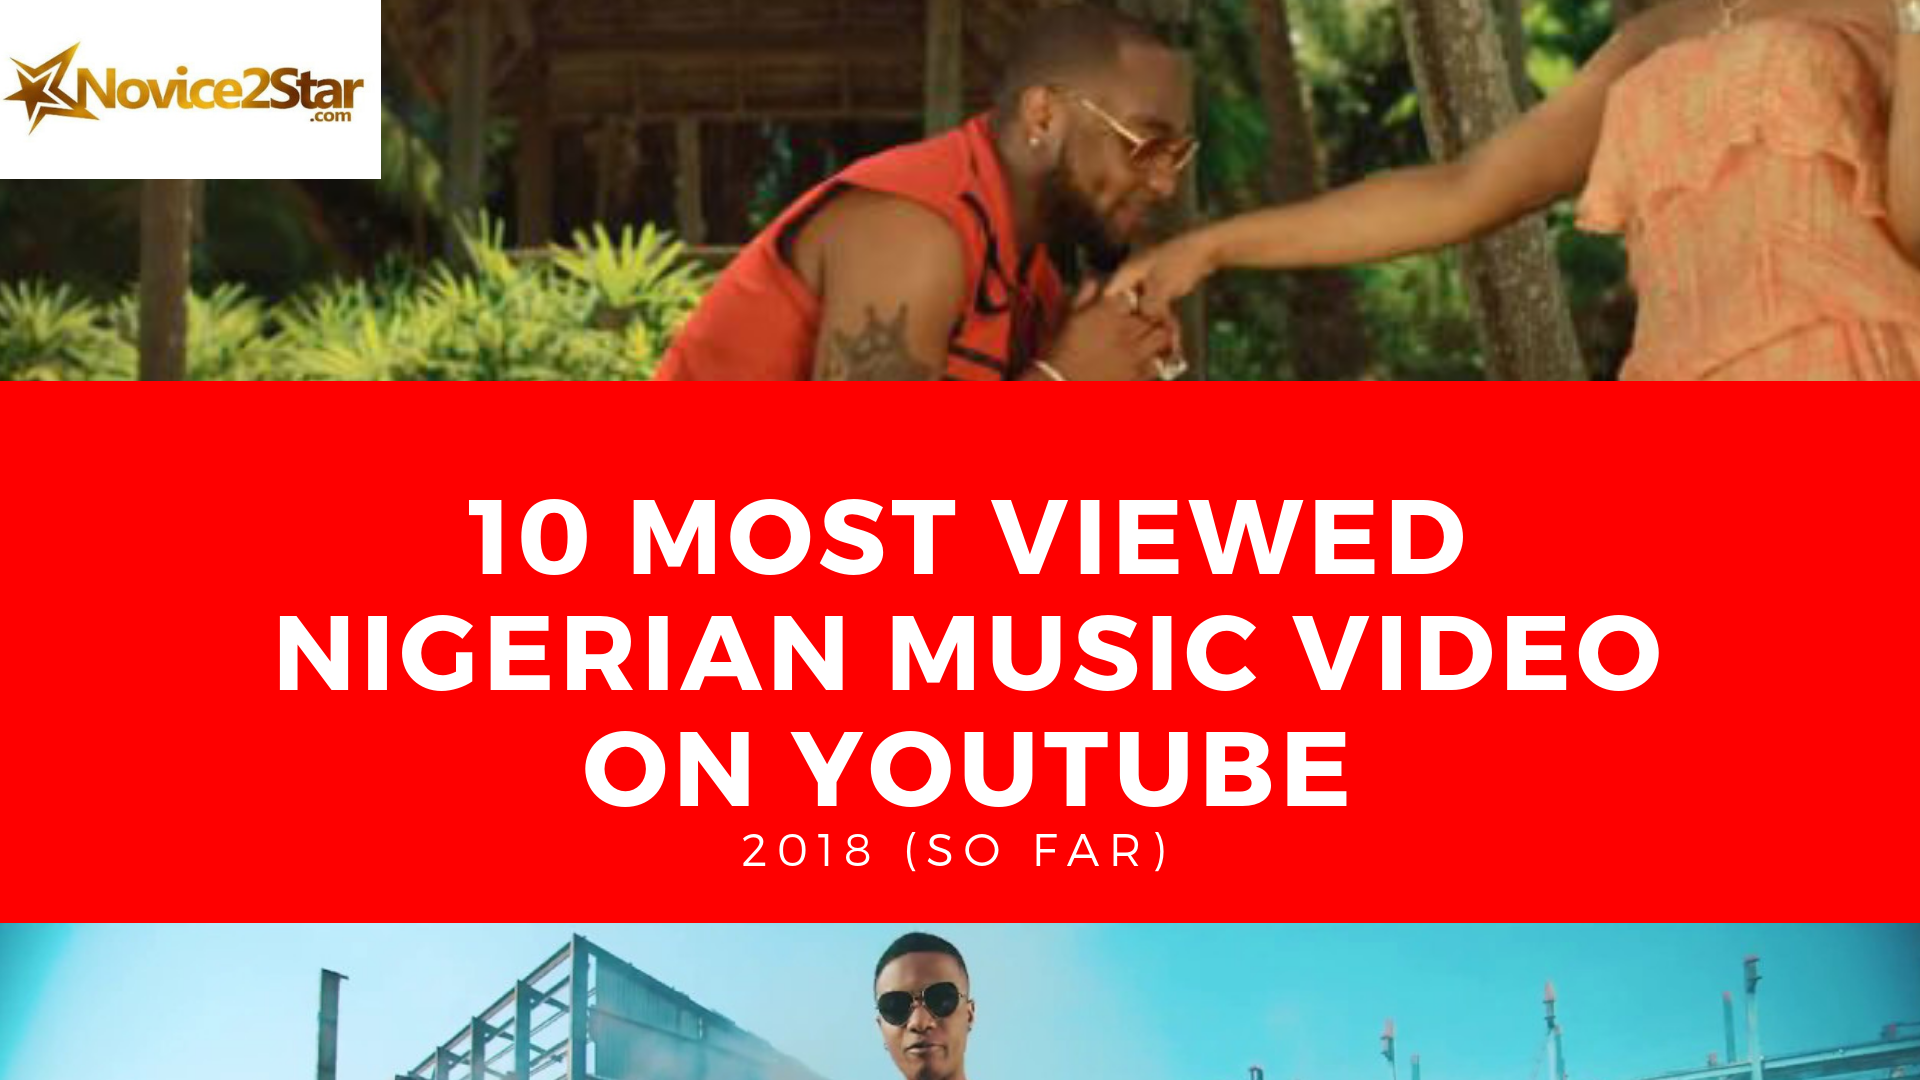 10 Most Viewed Nigerian Music Video On YouTube 2018 (SO Far)